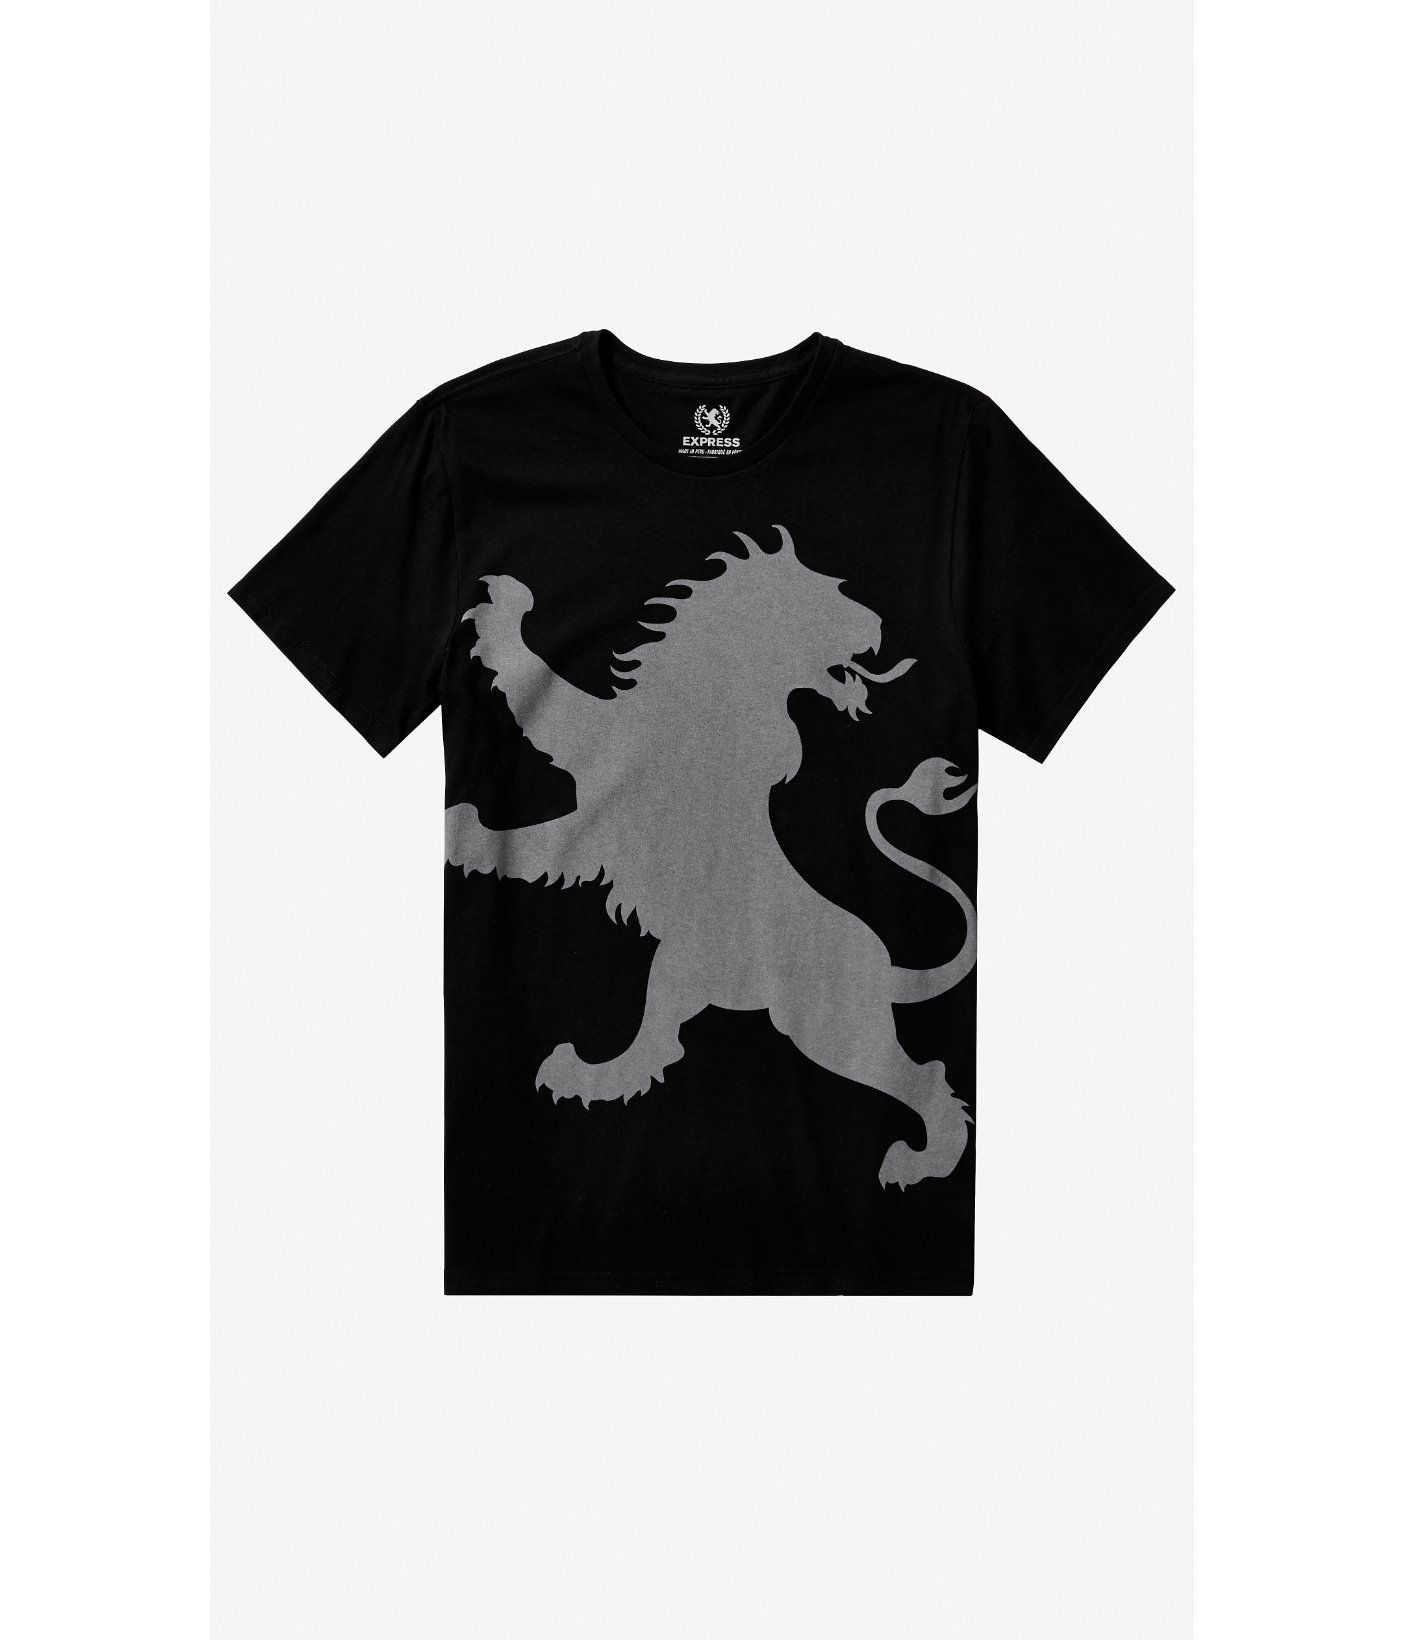 Express Lion Logo - Lyst - Express Black Oversized Lion Graphic Tee in Black for Men